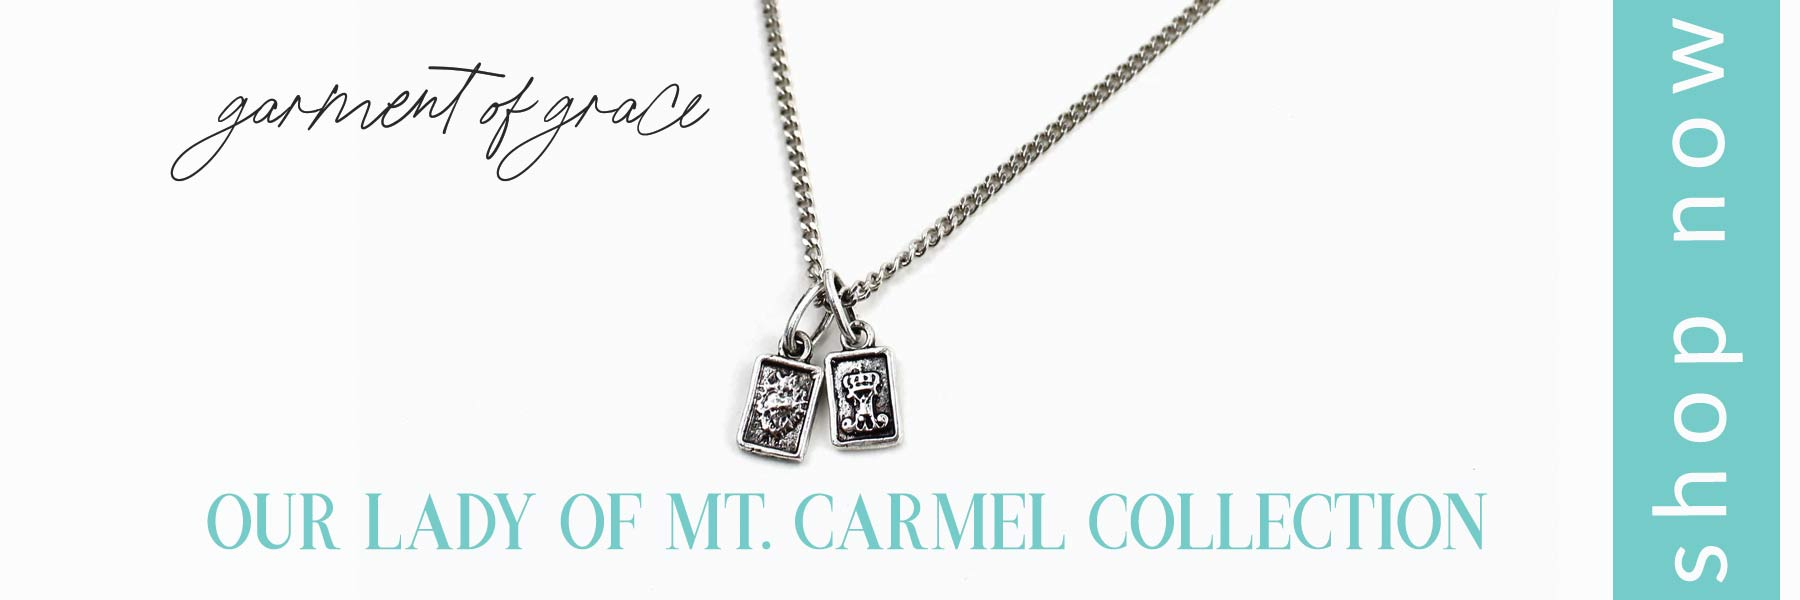 Our Lady of Mt. Carmel Jewelry Collection